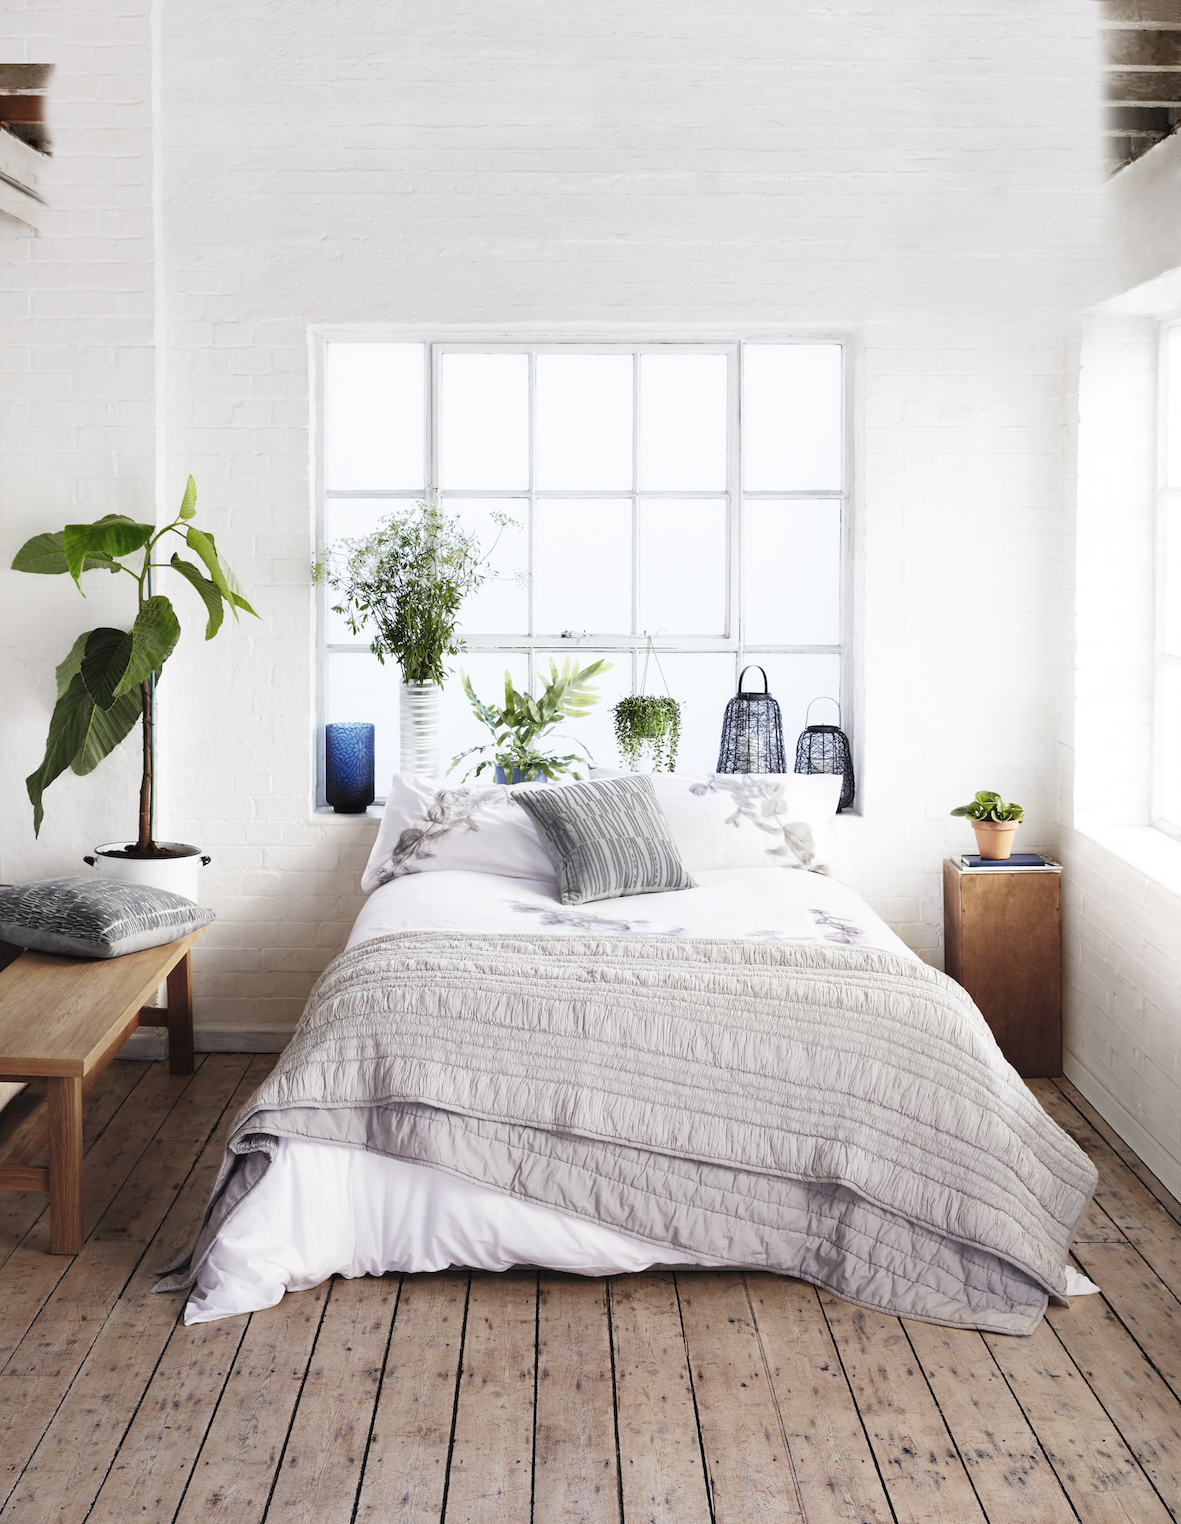 Fresh greenery adds vitality to this crisp white interior | Courtesy of Debenhams